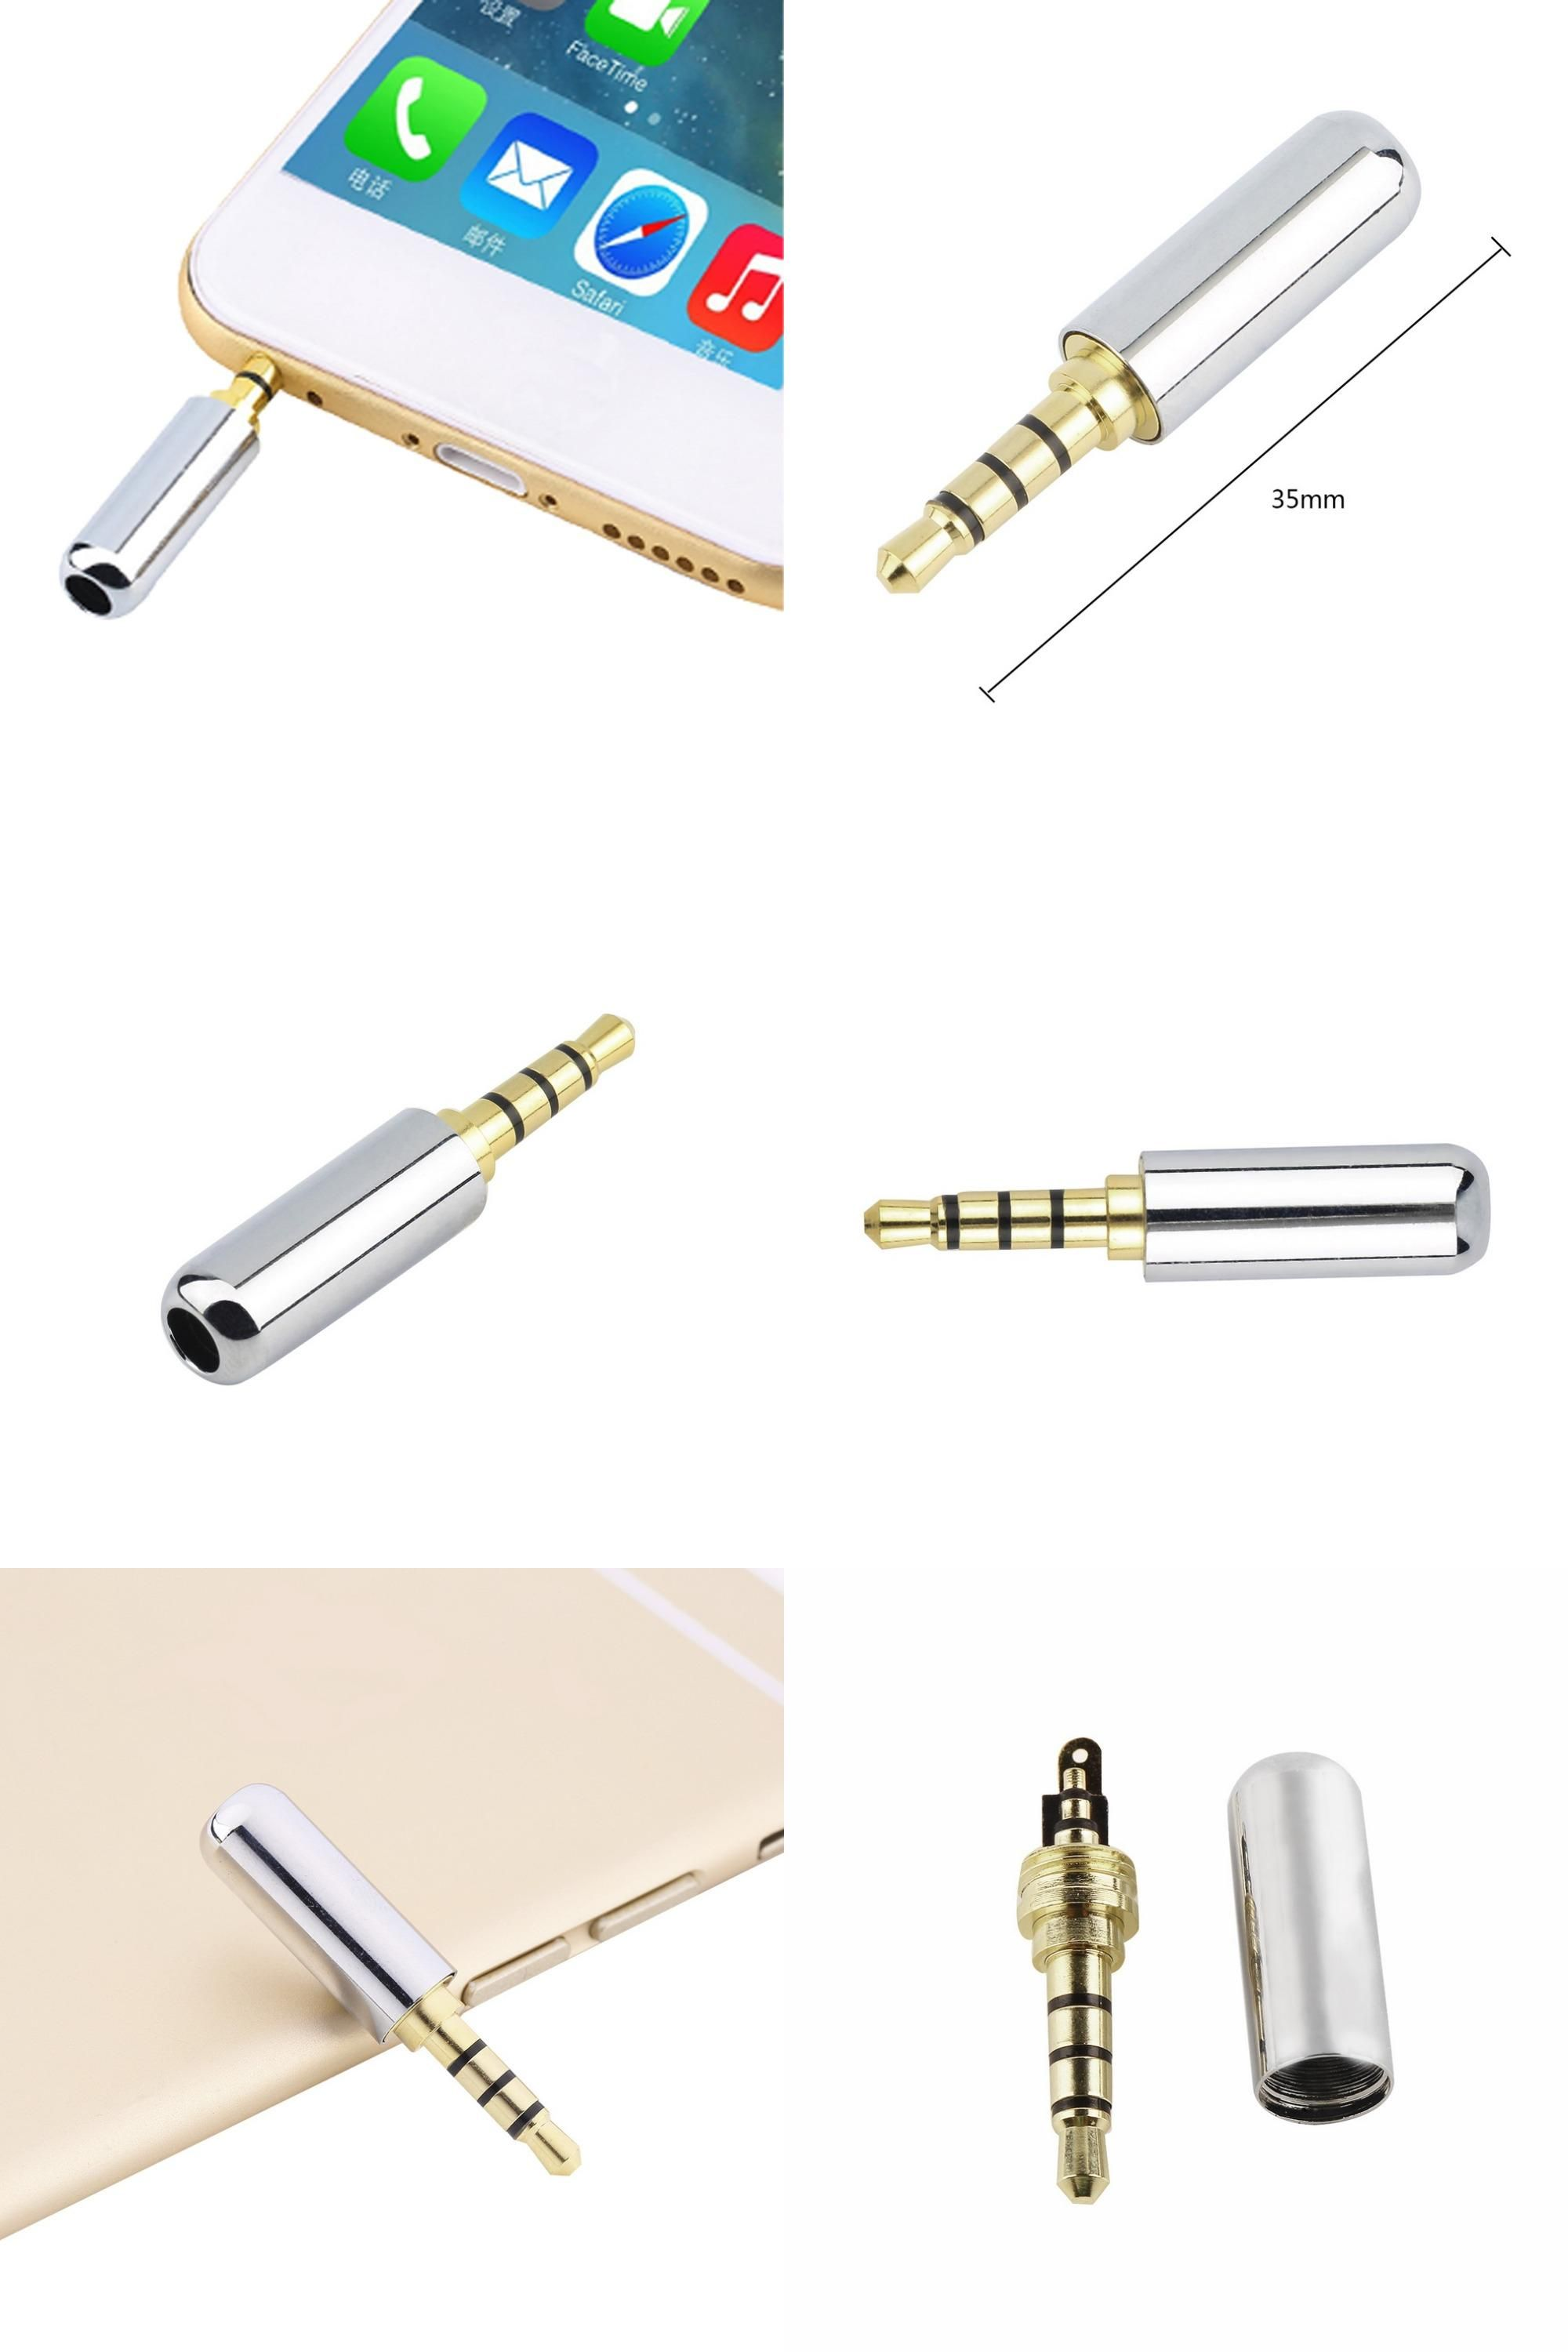 Visit To Buy 1pc Sliver 4 Pole 3 5mm Male Repair Headphone Jack Plug Metal Audio Soldering Cover Free Shipping New Arrival Adv Stuff To Buy Headphone Plugs